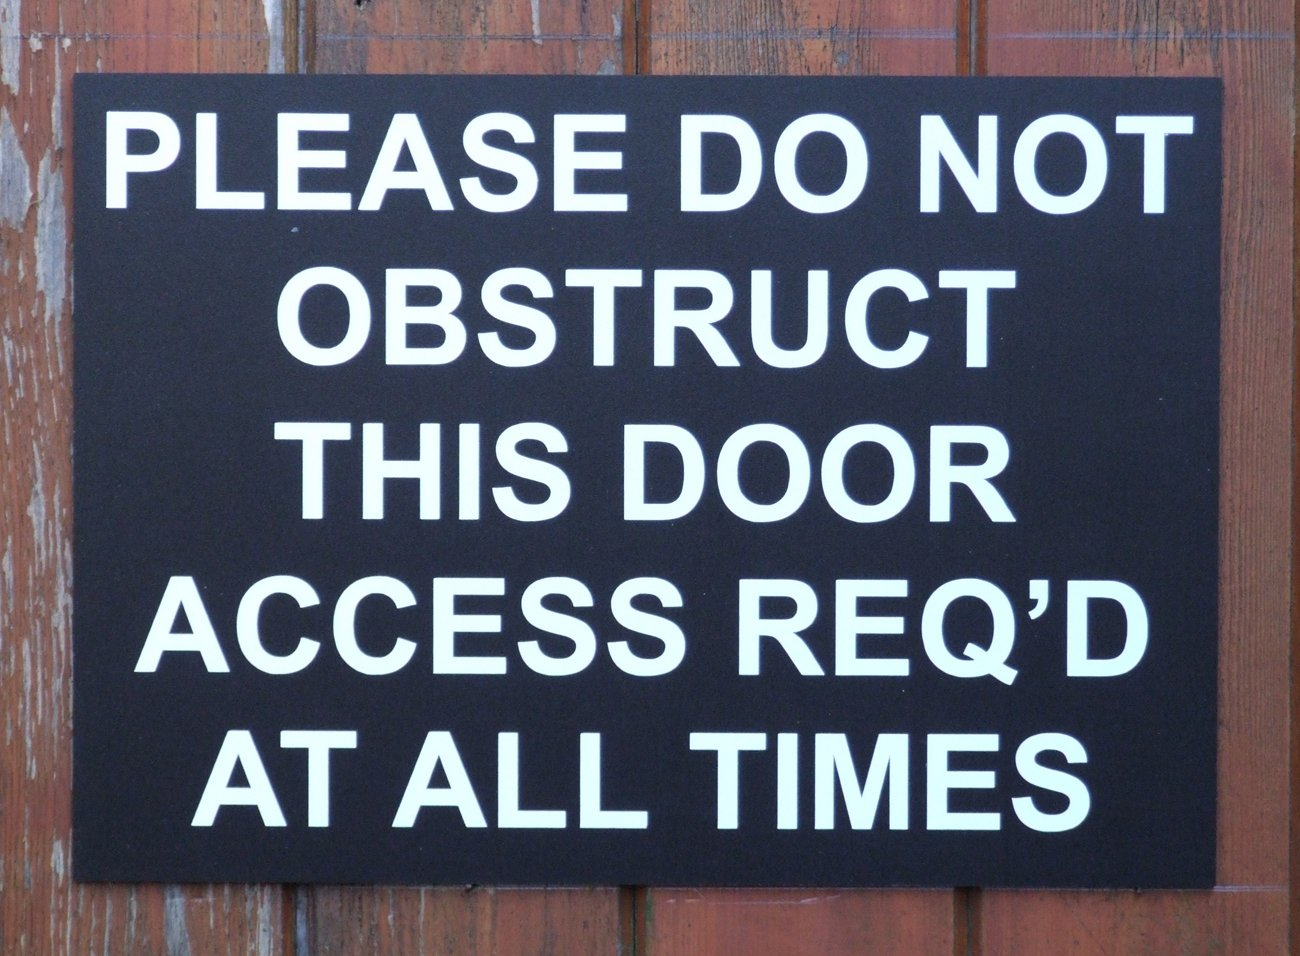 Made in UK All fixing included MR2 Car Parking Sign Gift for toyota mr-2 mr 2 turbo models Extra Large Size 205 x 270mm by Custom Made